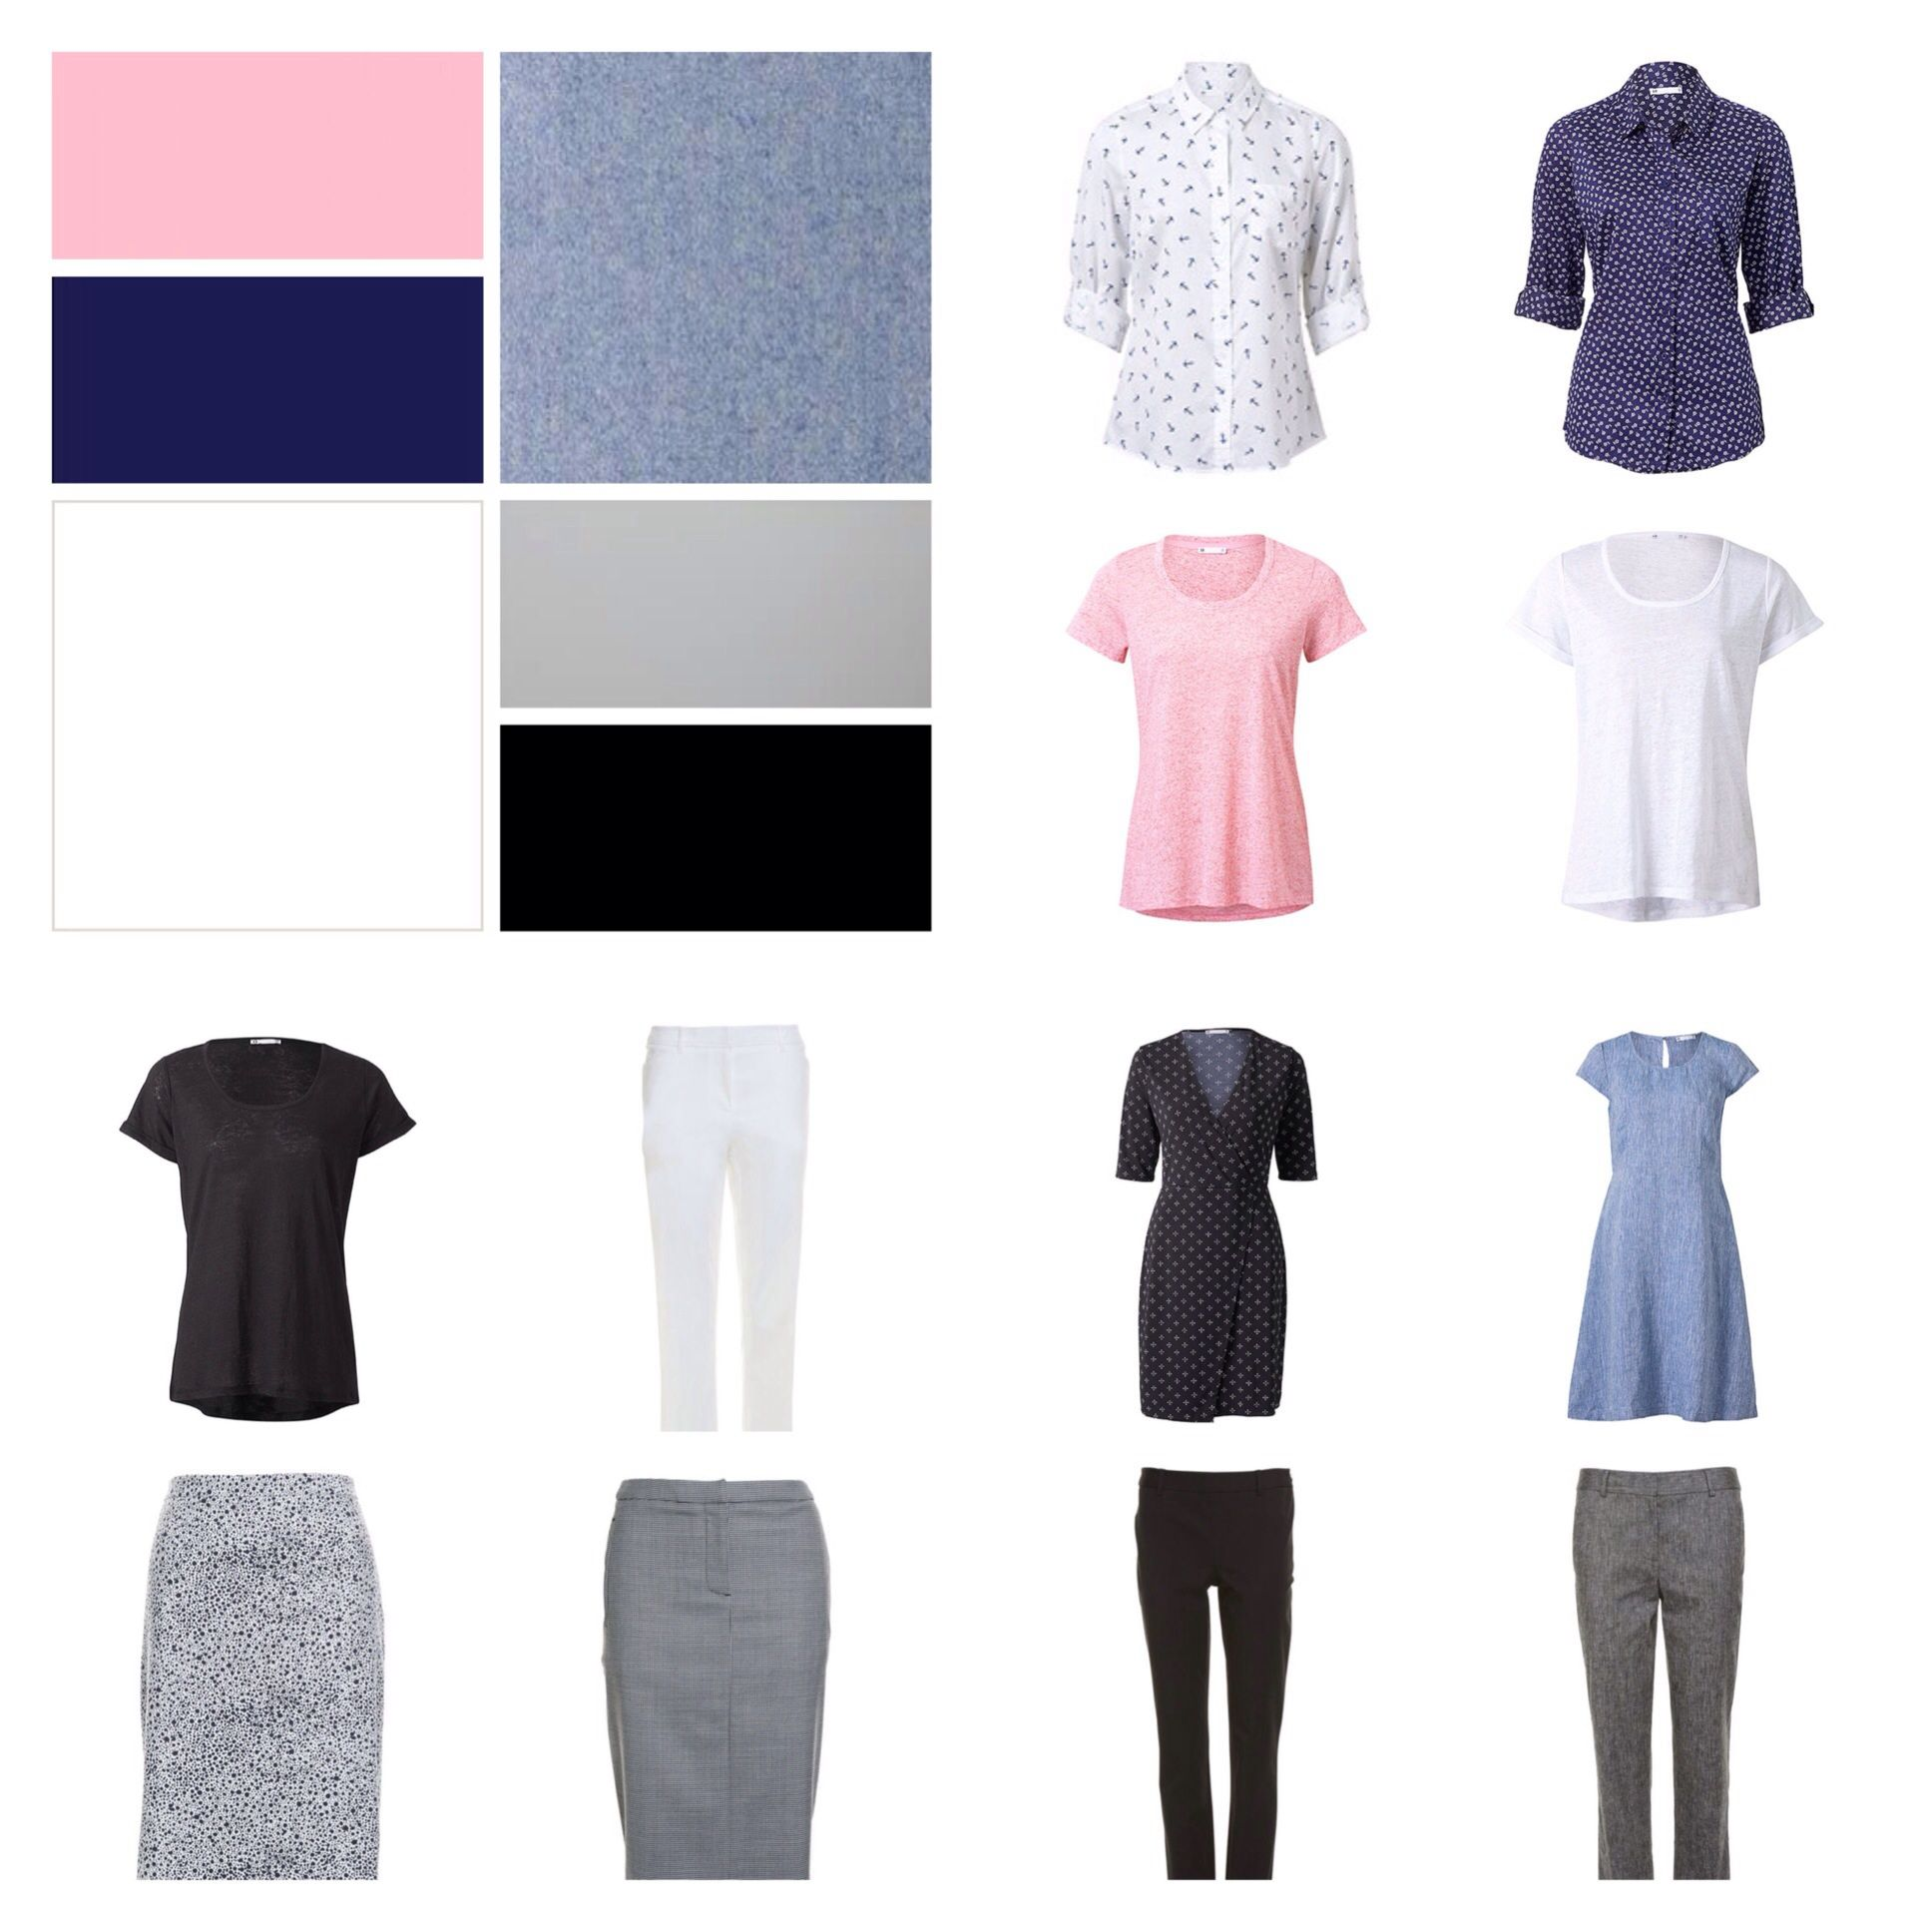 Spring Work Capsule, 5 tops, 5 bottoms, 2 dresses, from Sportscraft and Target Australia.